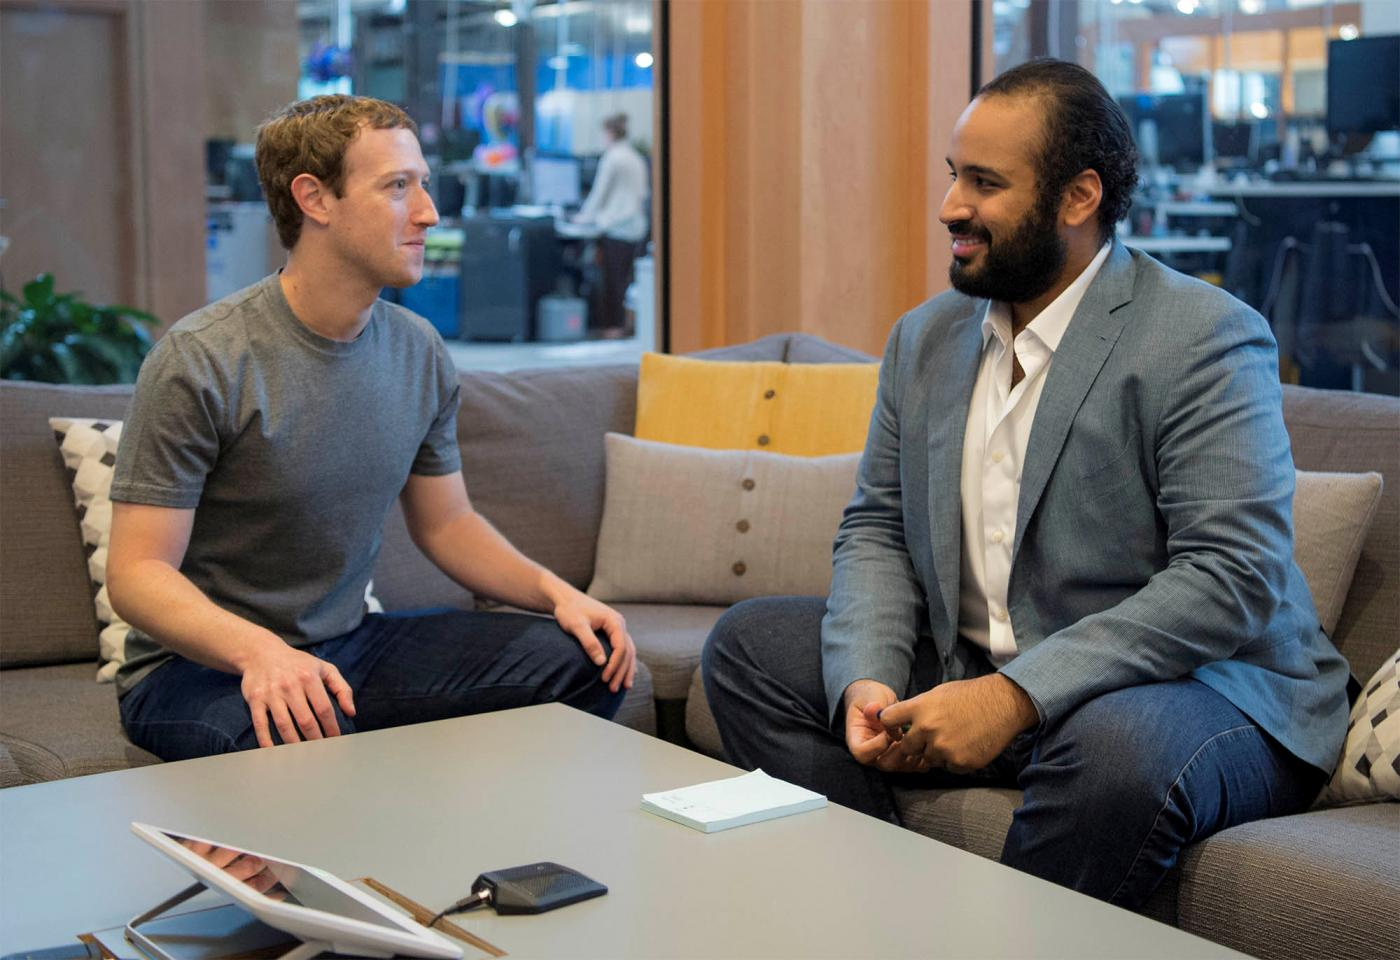 Facebook shuts down influence campaigns linked to Saudi government, UAE, and Egypt